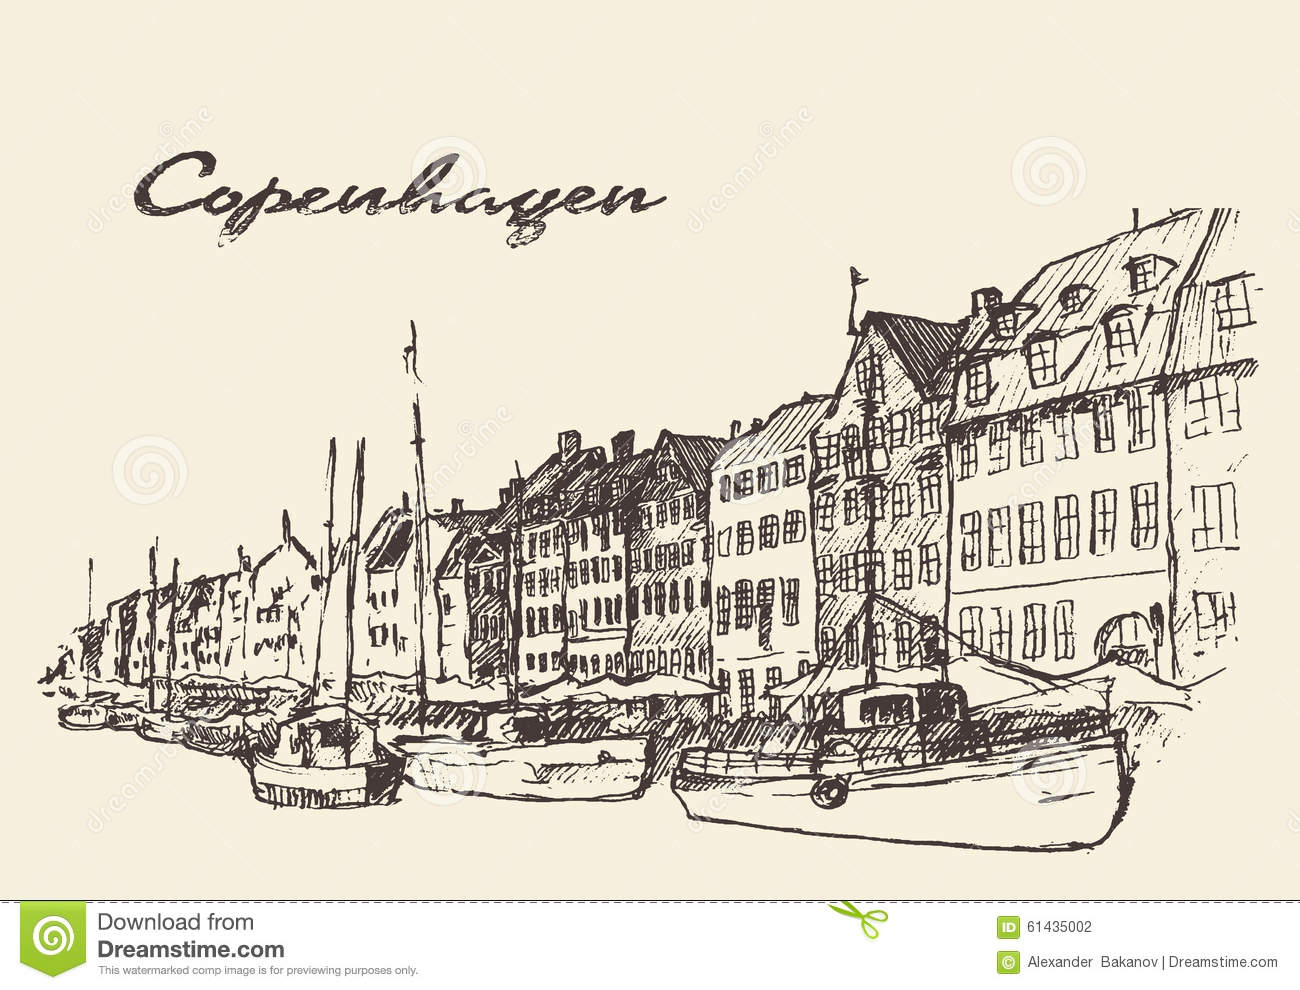 Copenhagen Denmark Illustration Hand Drawn Stock Vector - Image: 61435002